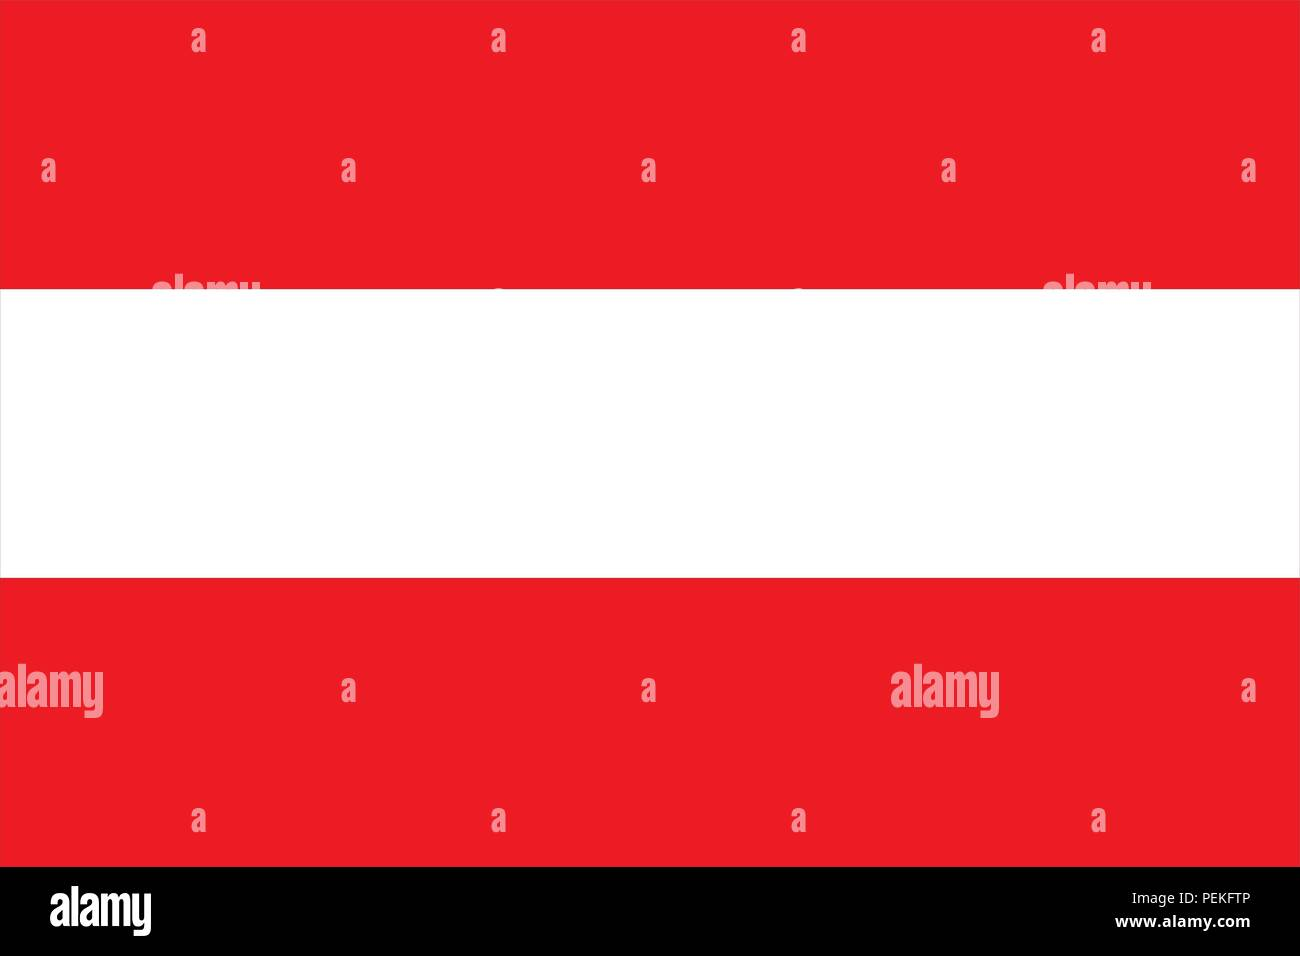 Flag of Austria Flagge Österreichs triband red white red Stock Vector